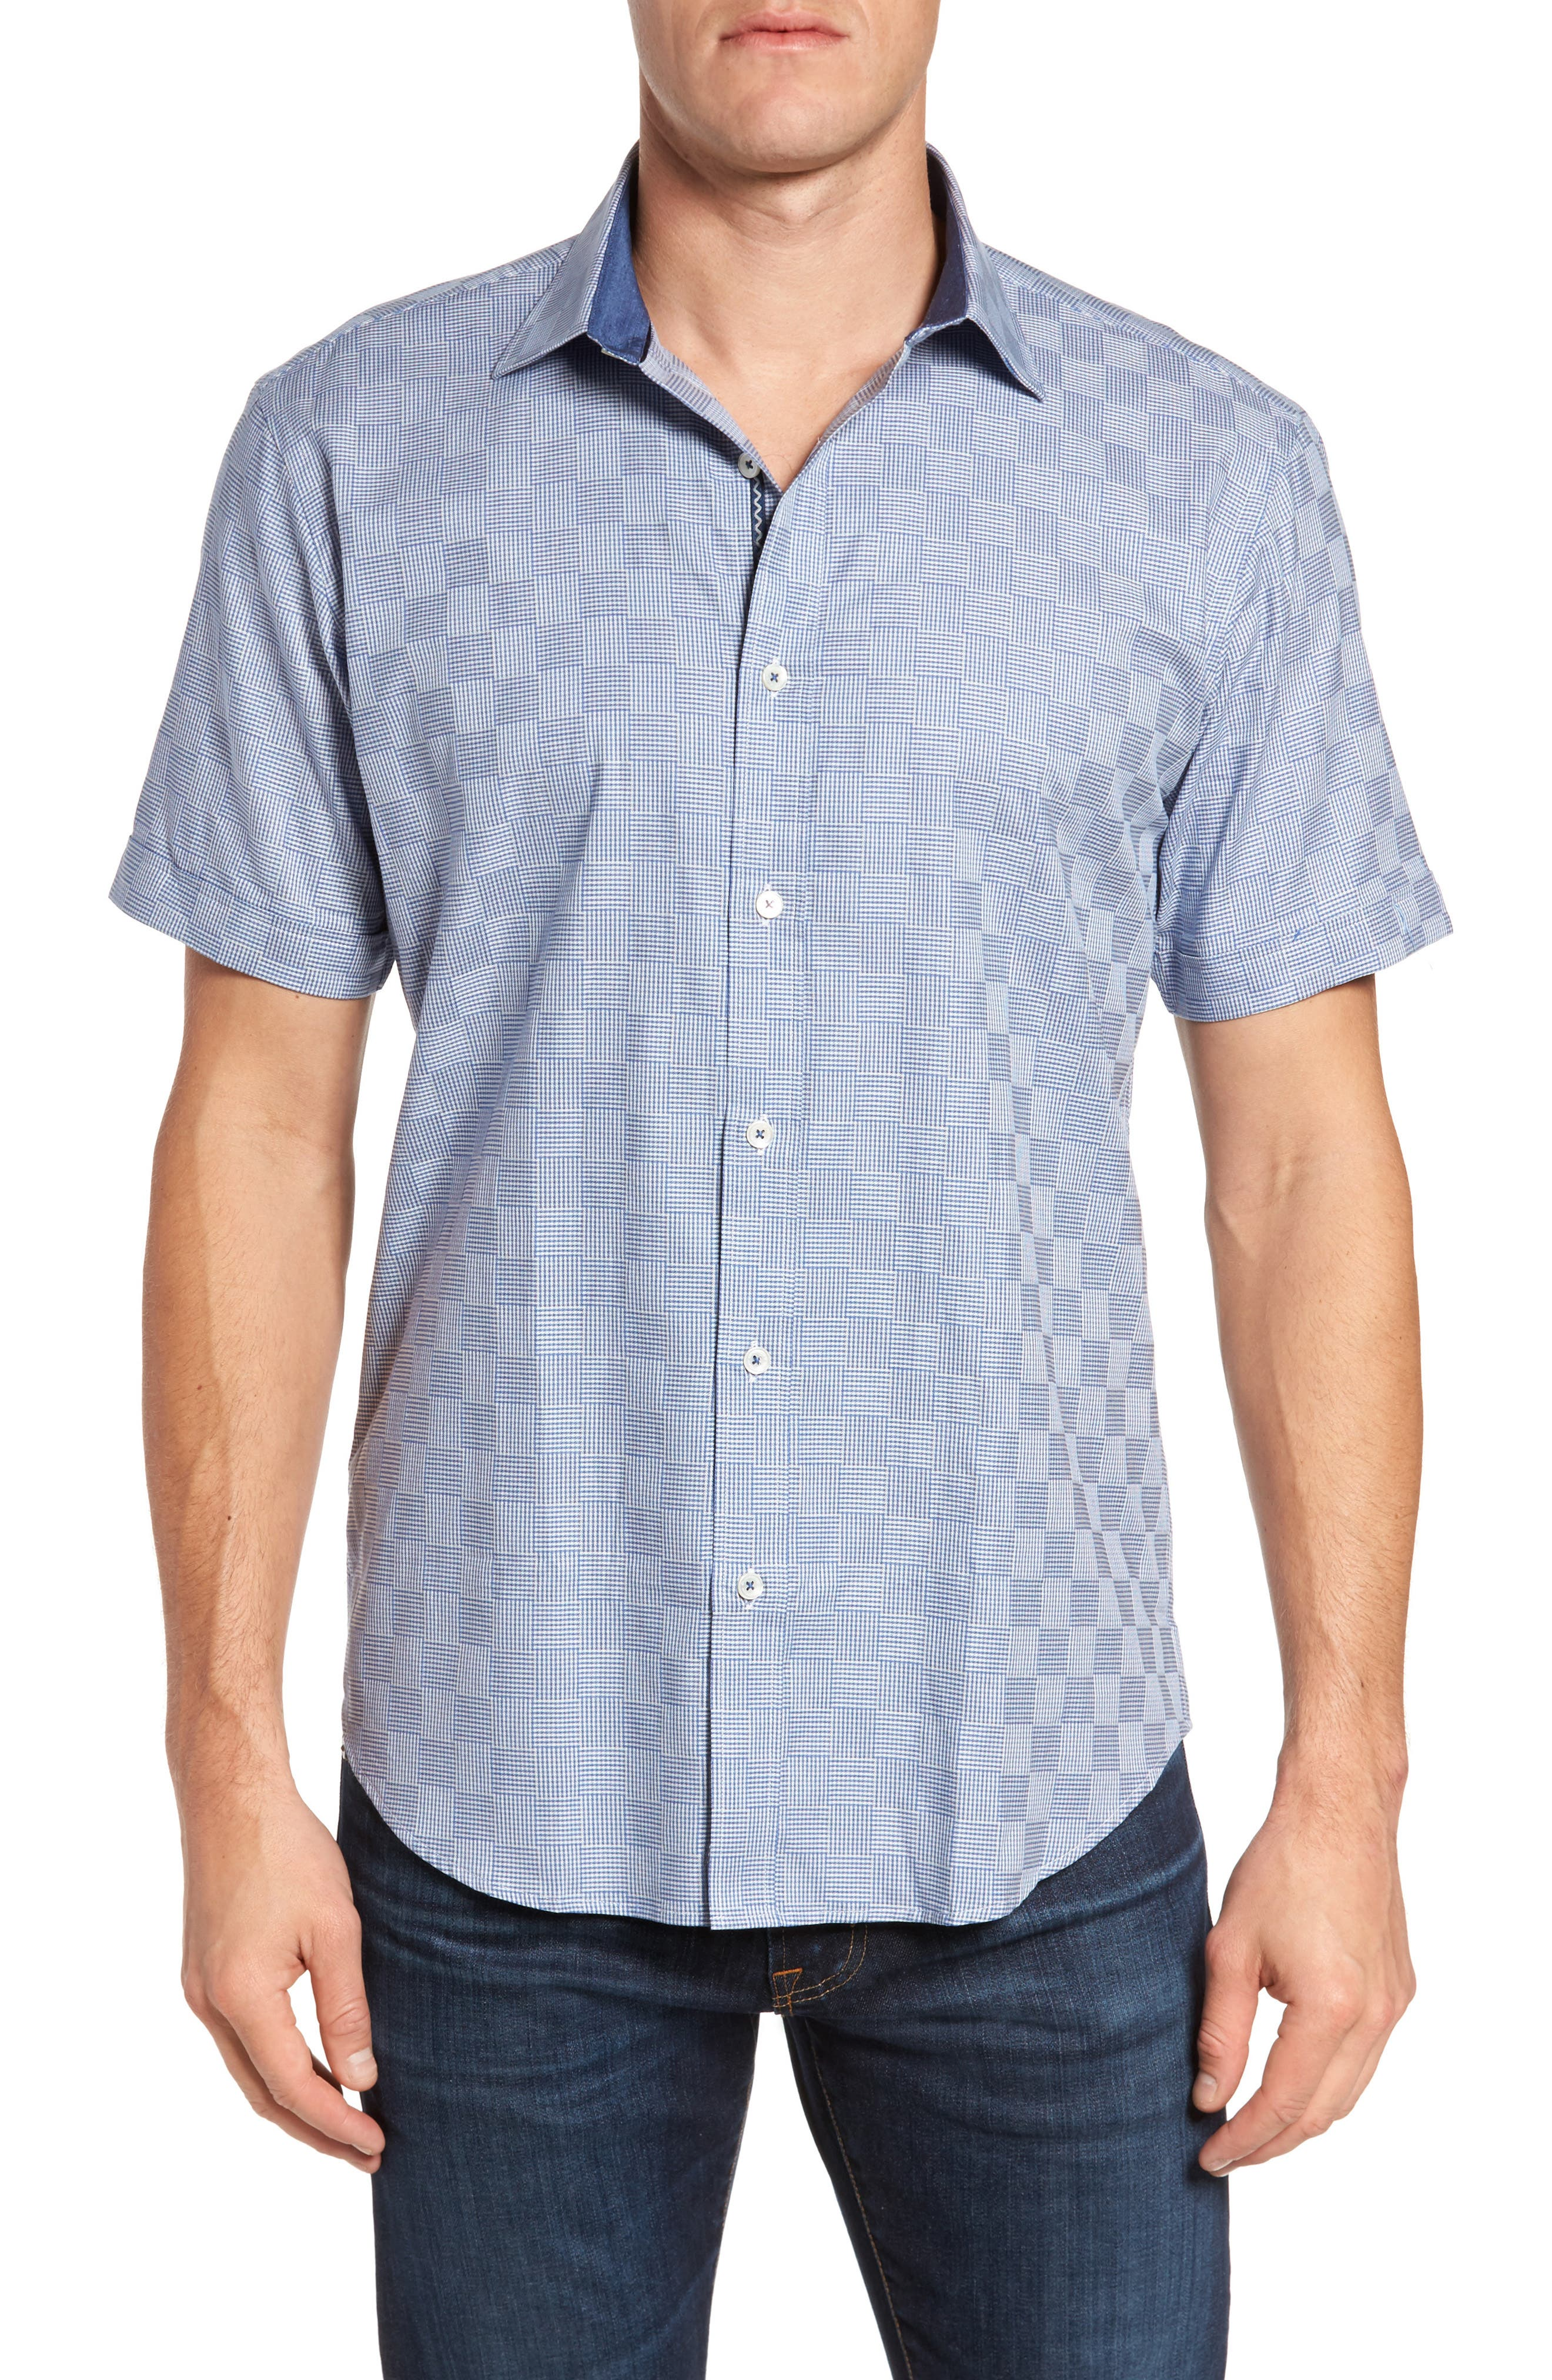 Alternate Image 1 Selected - Bugatchi Shaped Fit Houndstooth Check Sport Shirt